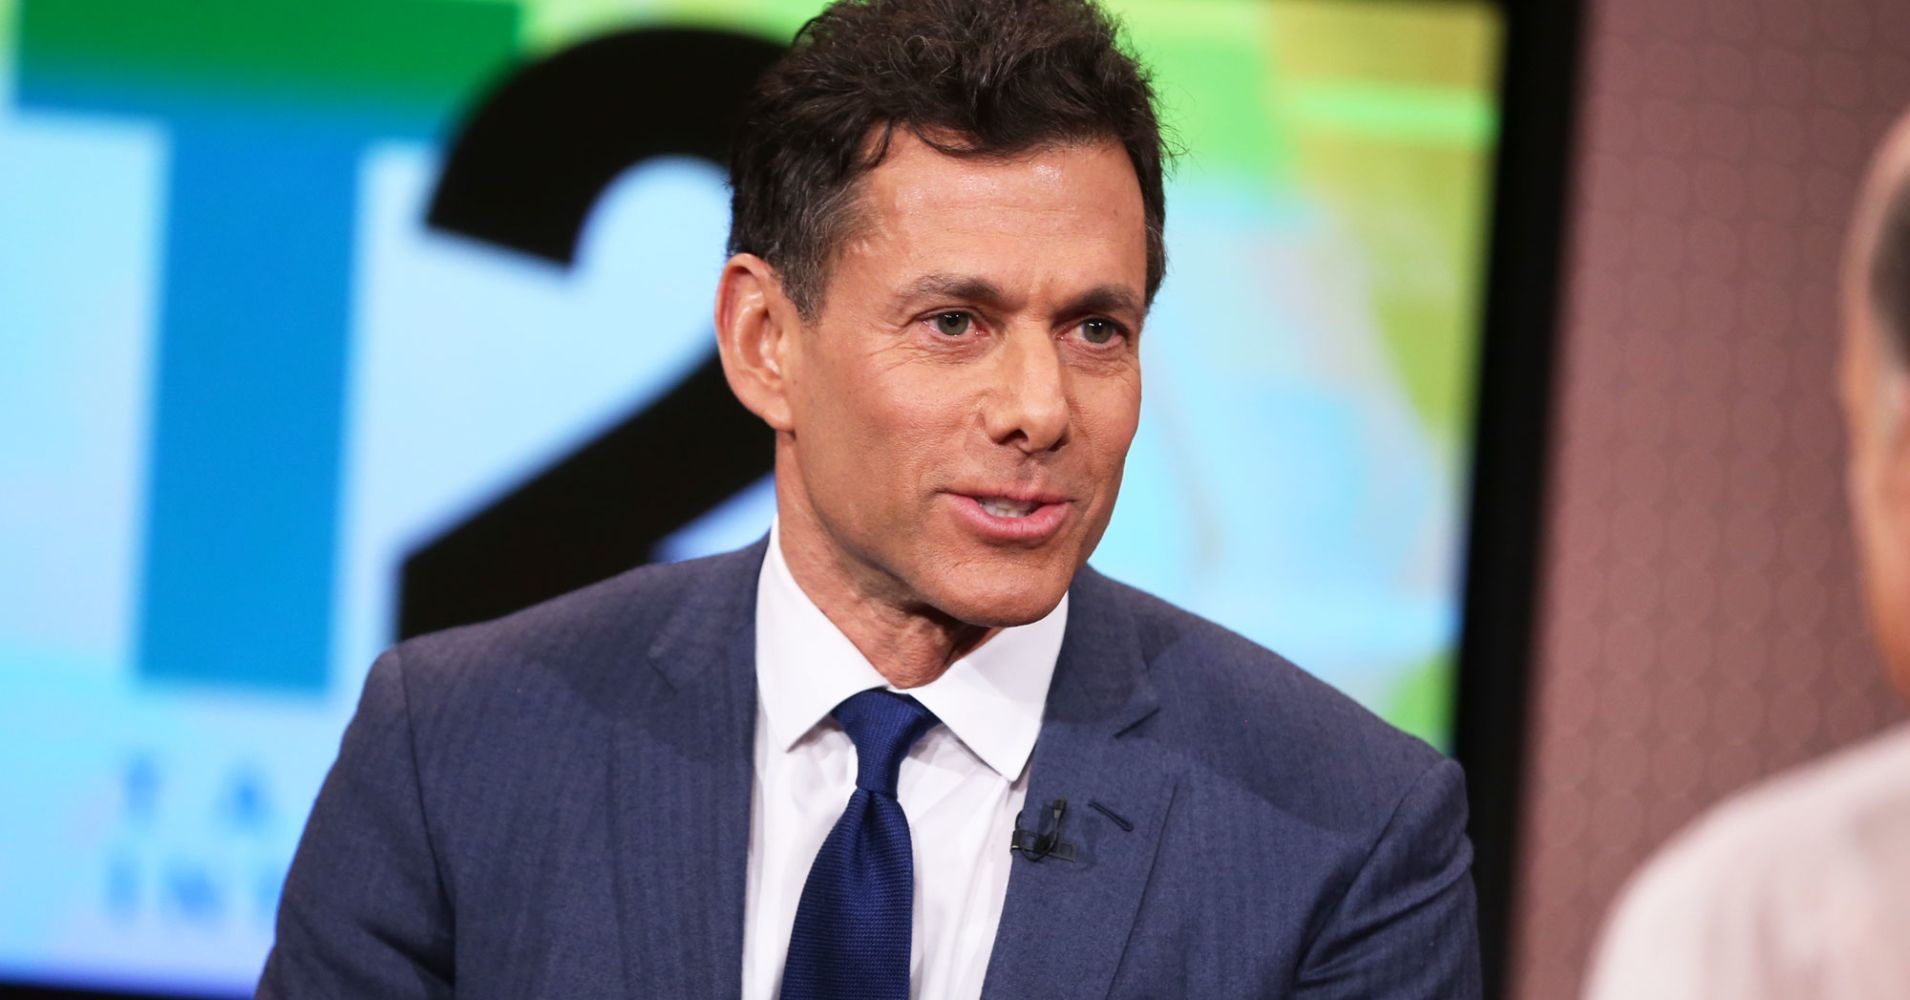 Take-Two CEO Strauss Zelnick (Image: CNBC)